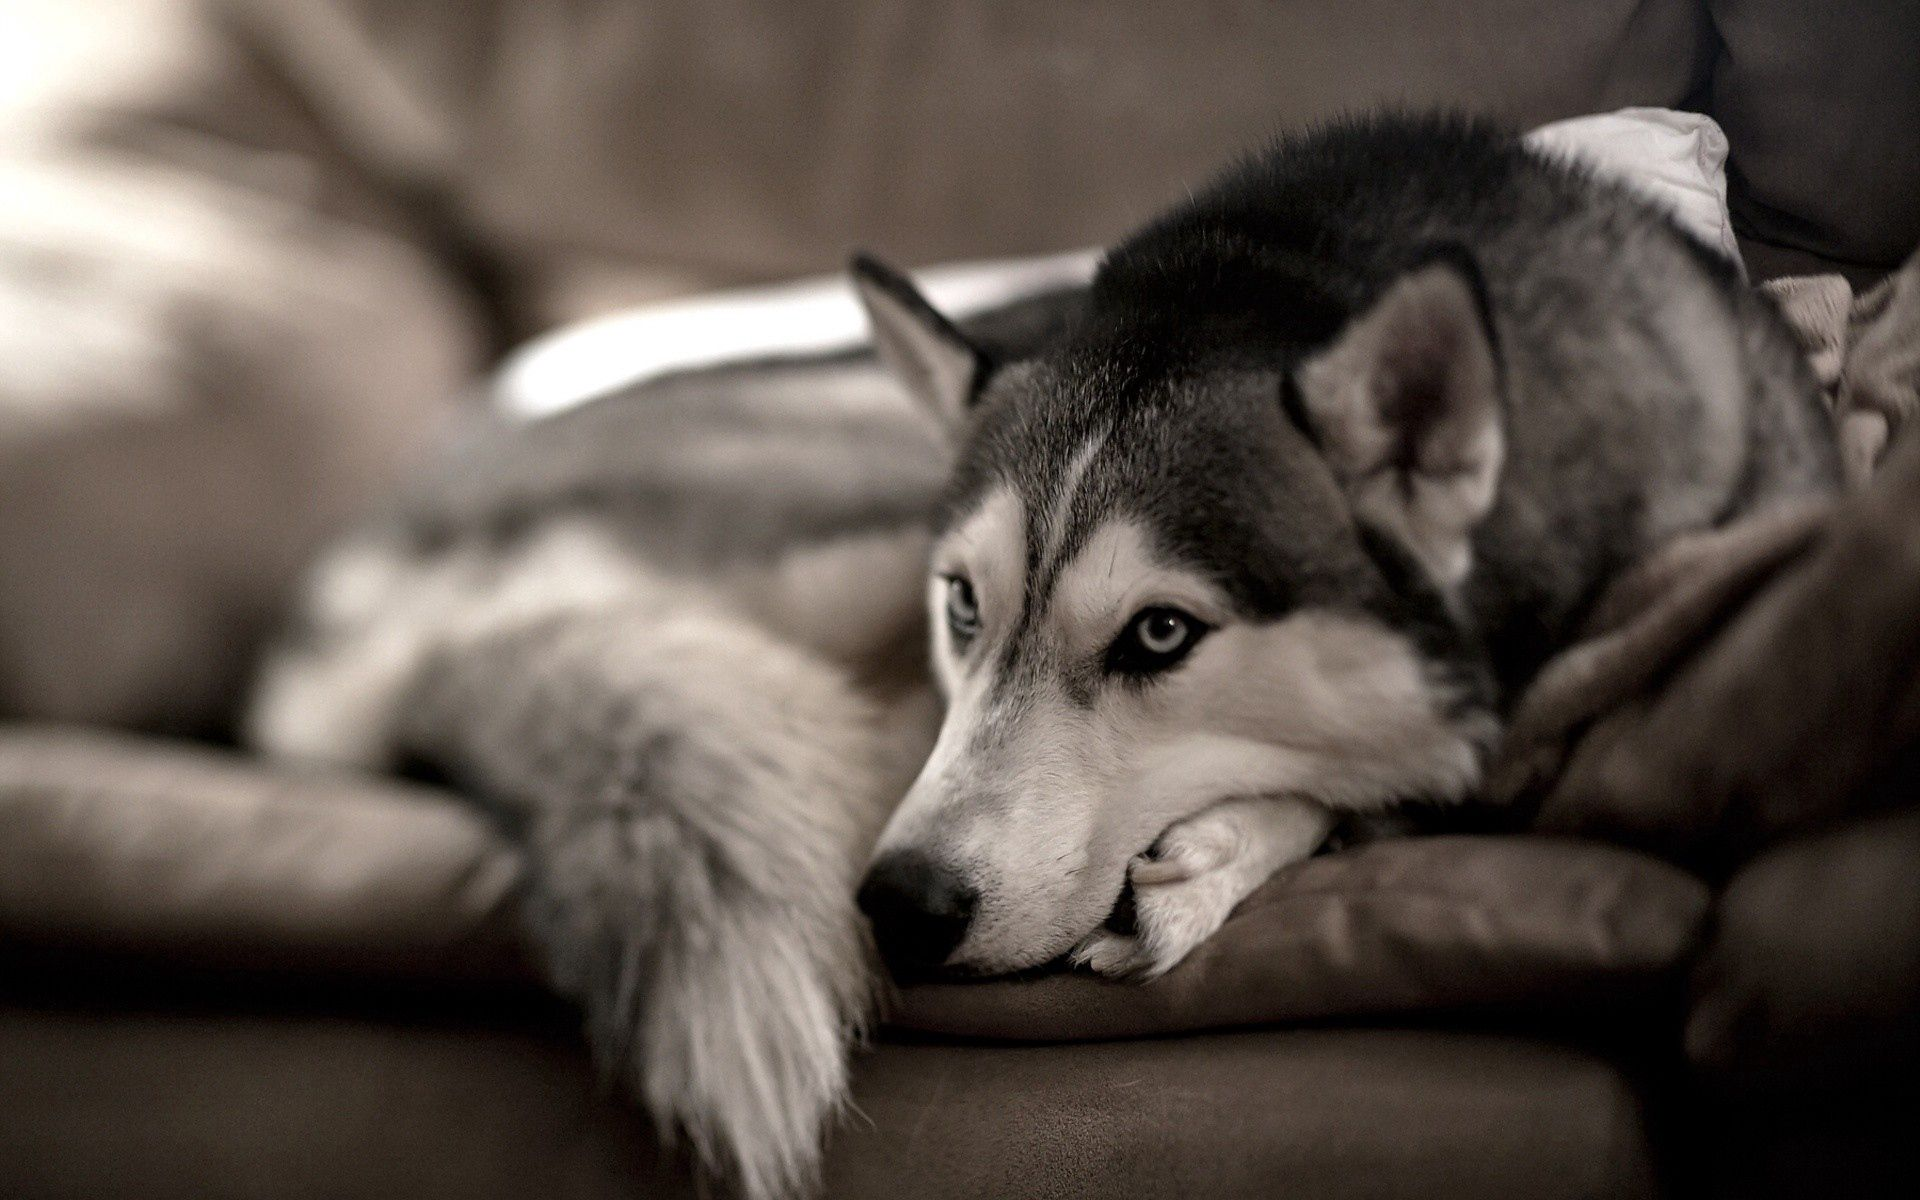 70866 download wallpaper Animals, Dog, Husky, Haska, Relaxation, Rest, Sofa screensavers and pictures for free